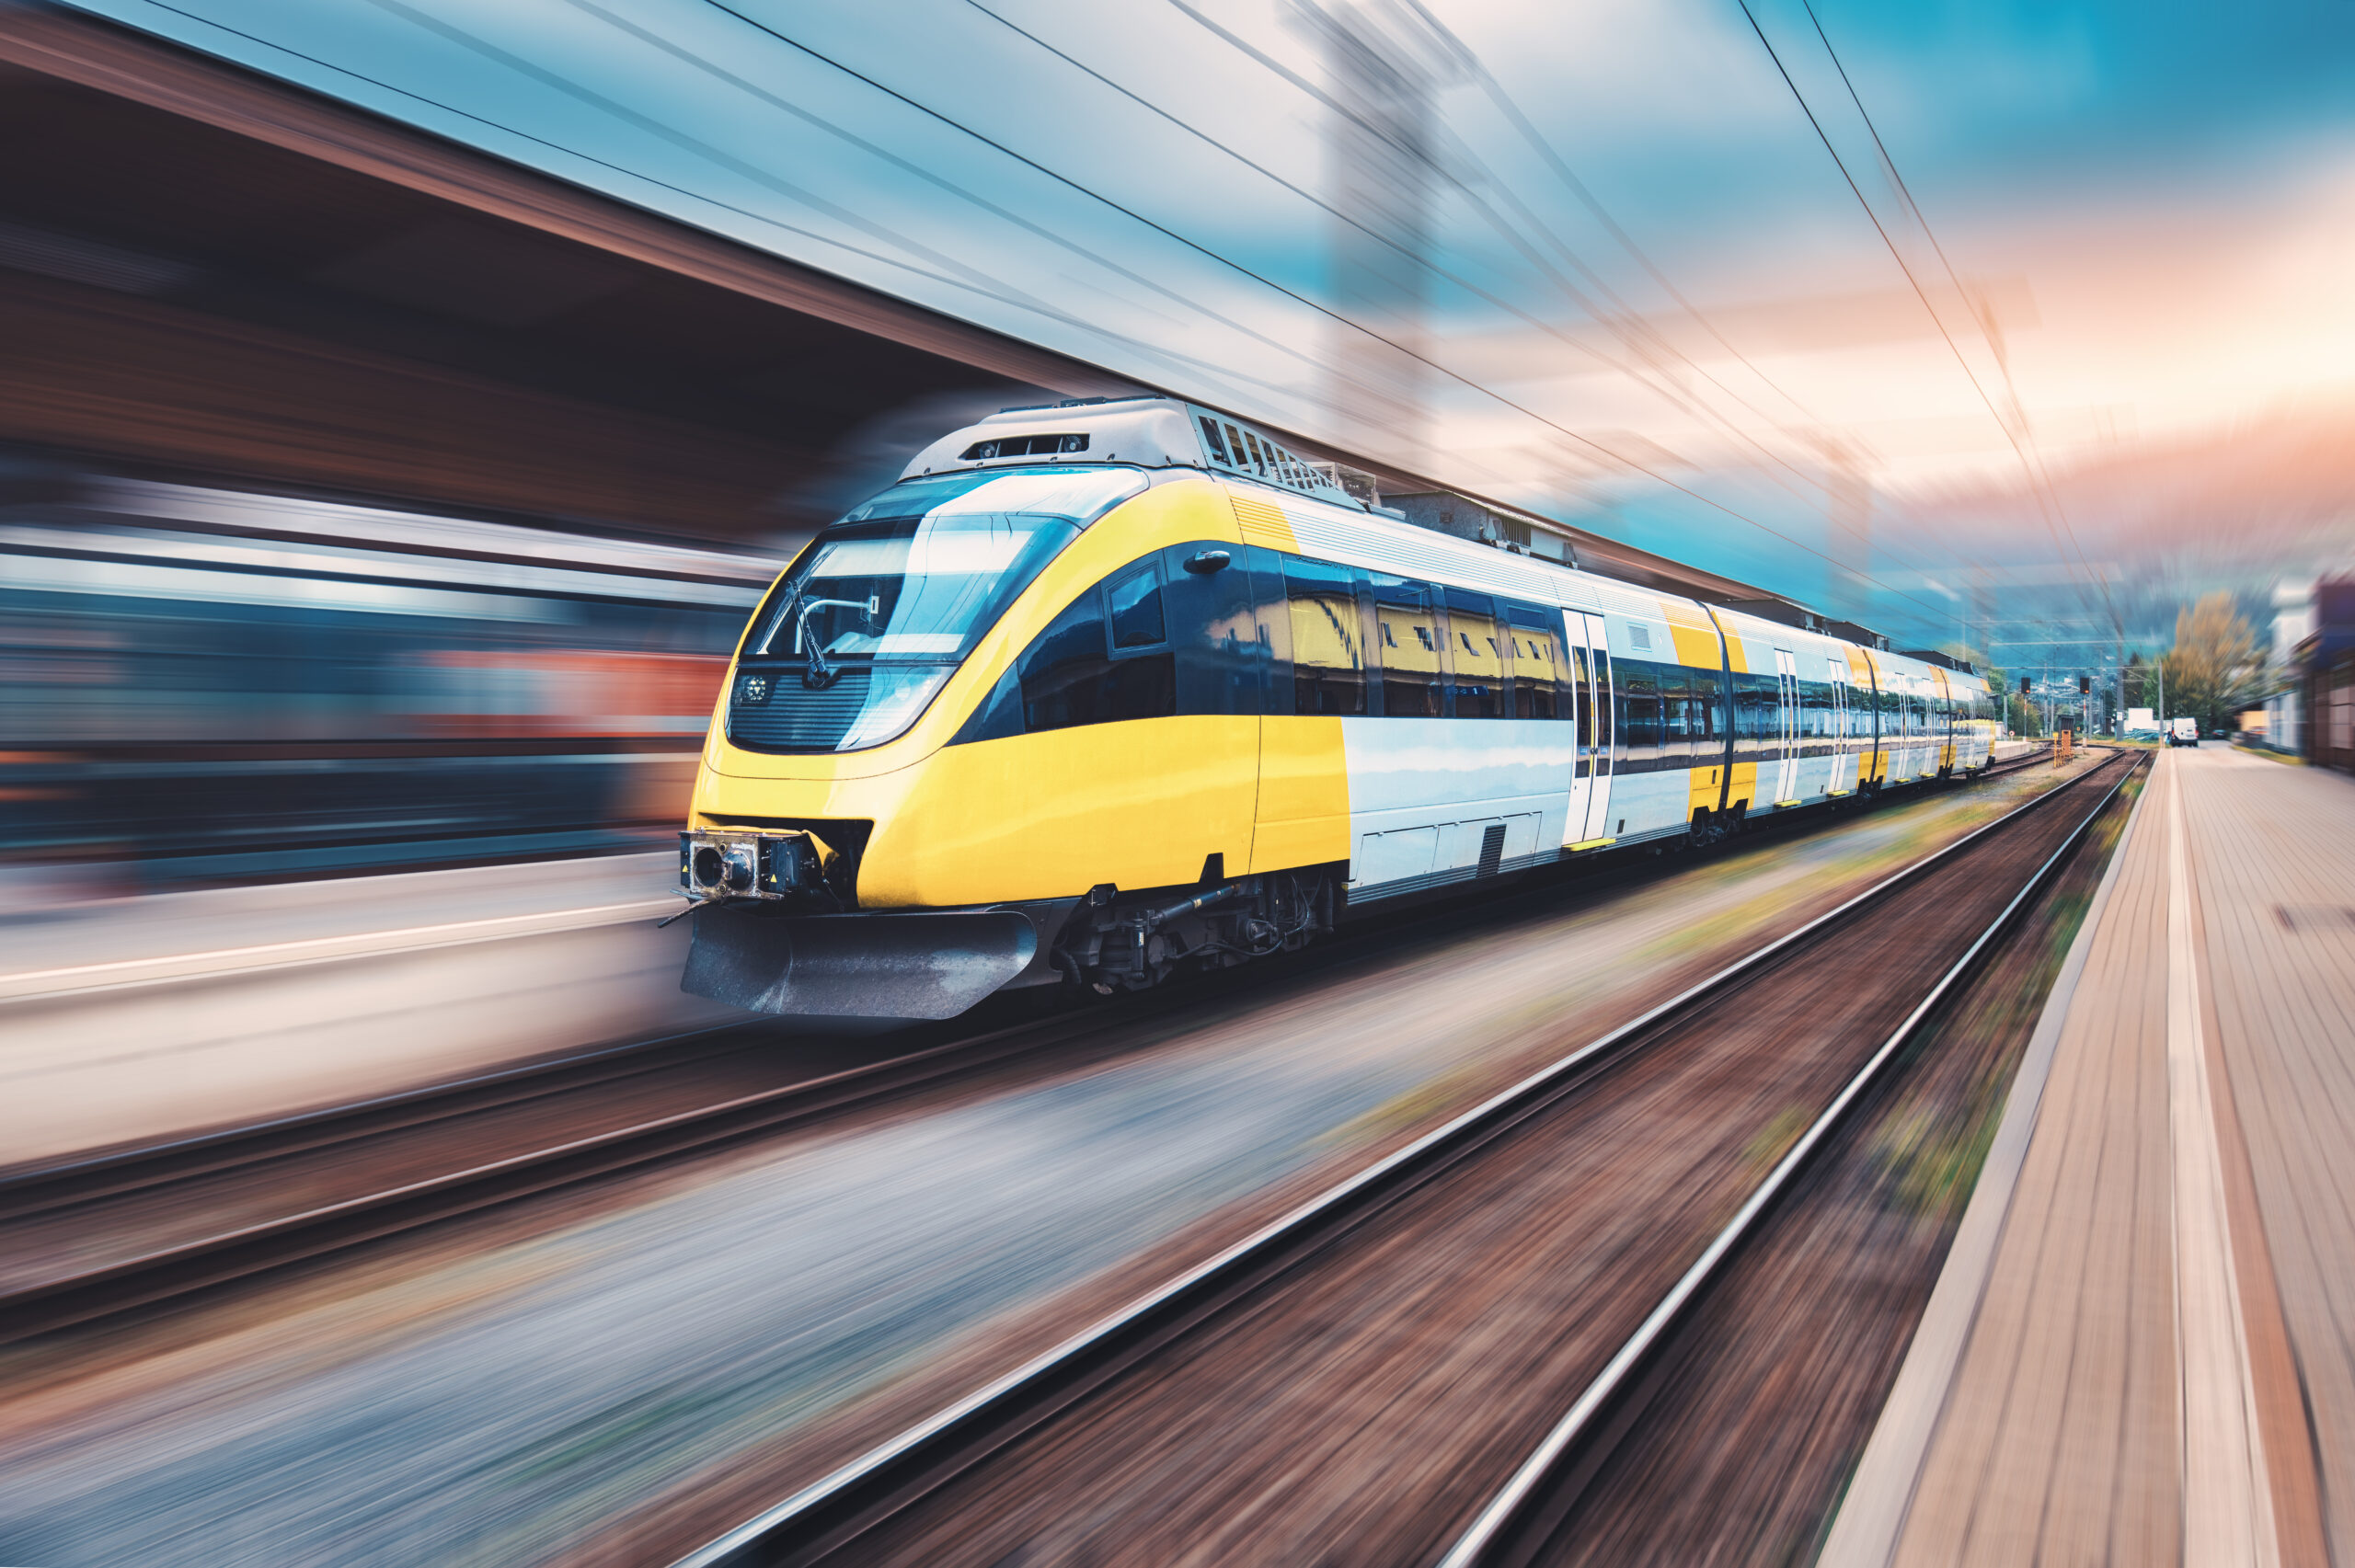 RAILEYE® products are fast and reliable like their trains